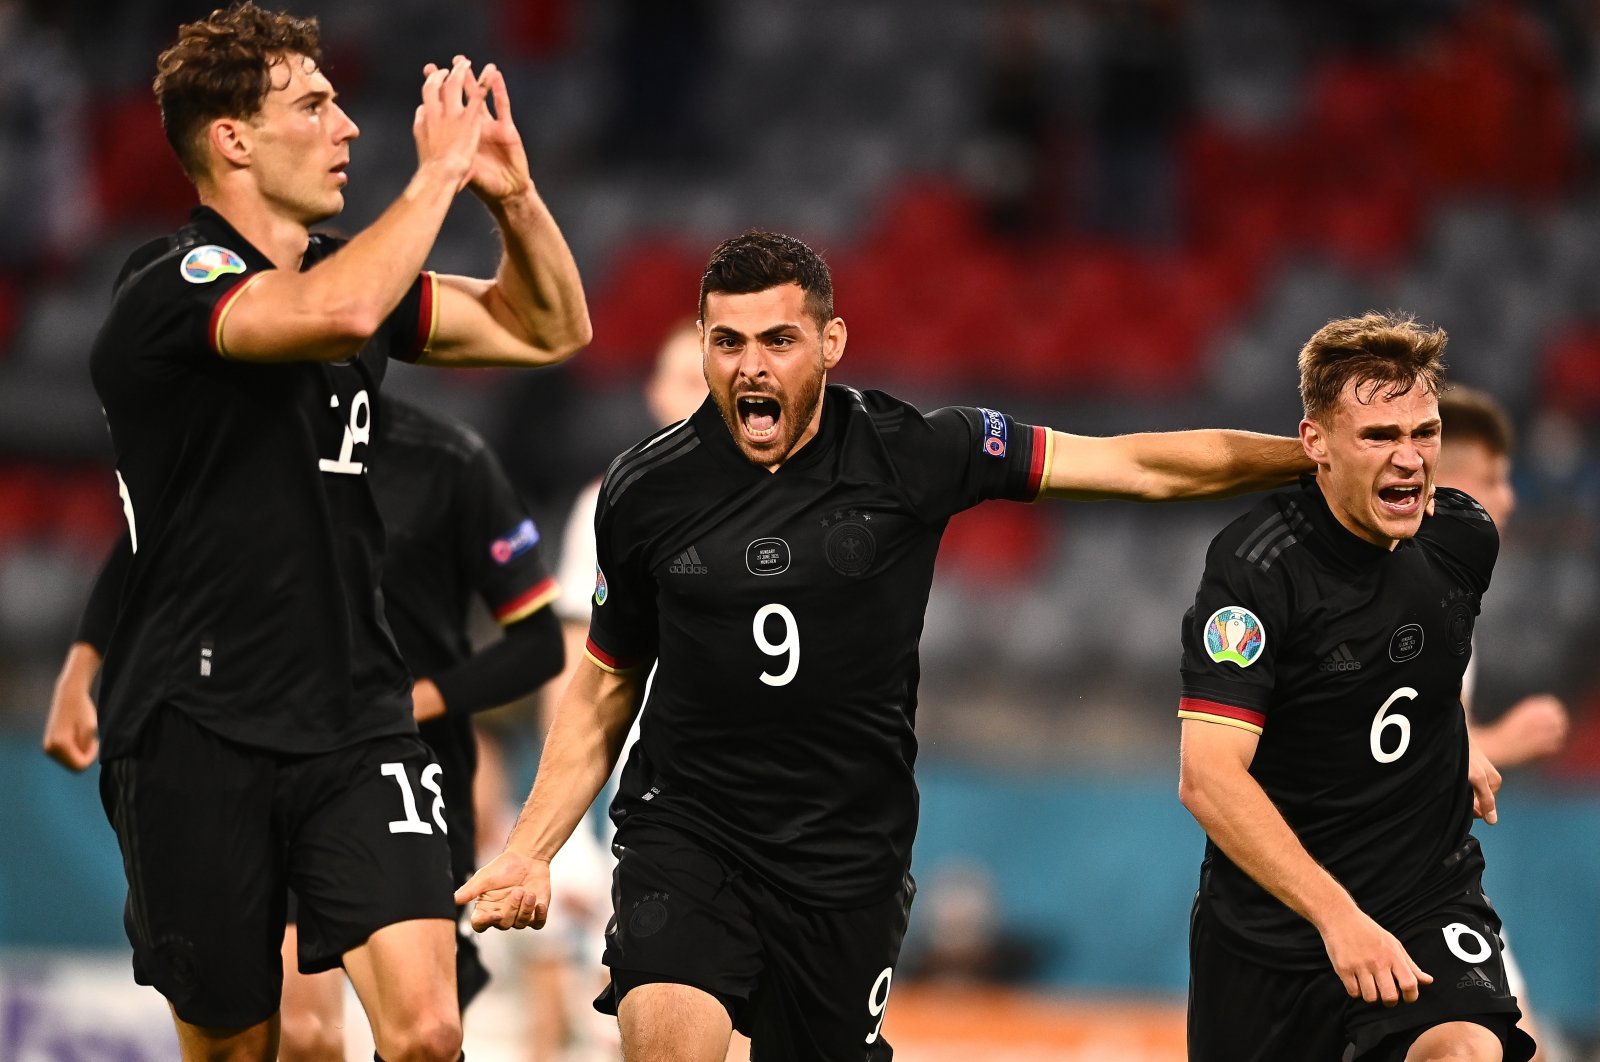 Leon Goretzka (L) of Germany celebrates with teammates Kevin Volland (C) and Joshua Kimmich (R) after scoring the 2-2 equalizer during the UEFA Euro 2020 Group F preliminary round soccer match between Germany and Hungary in Munich, Germany, June 23, 2021. (EPA Photo)